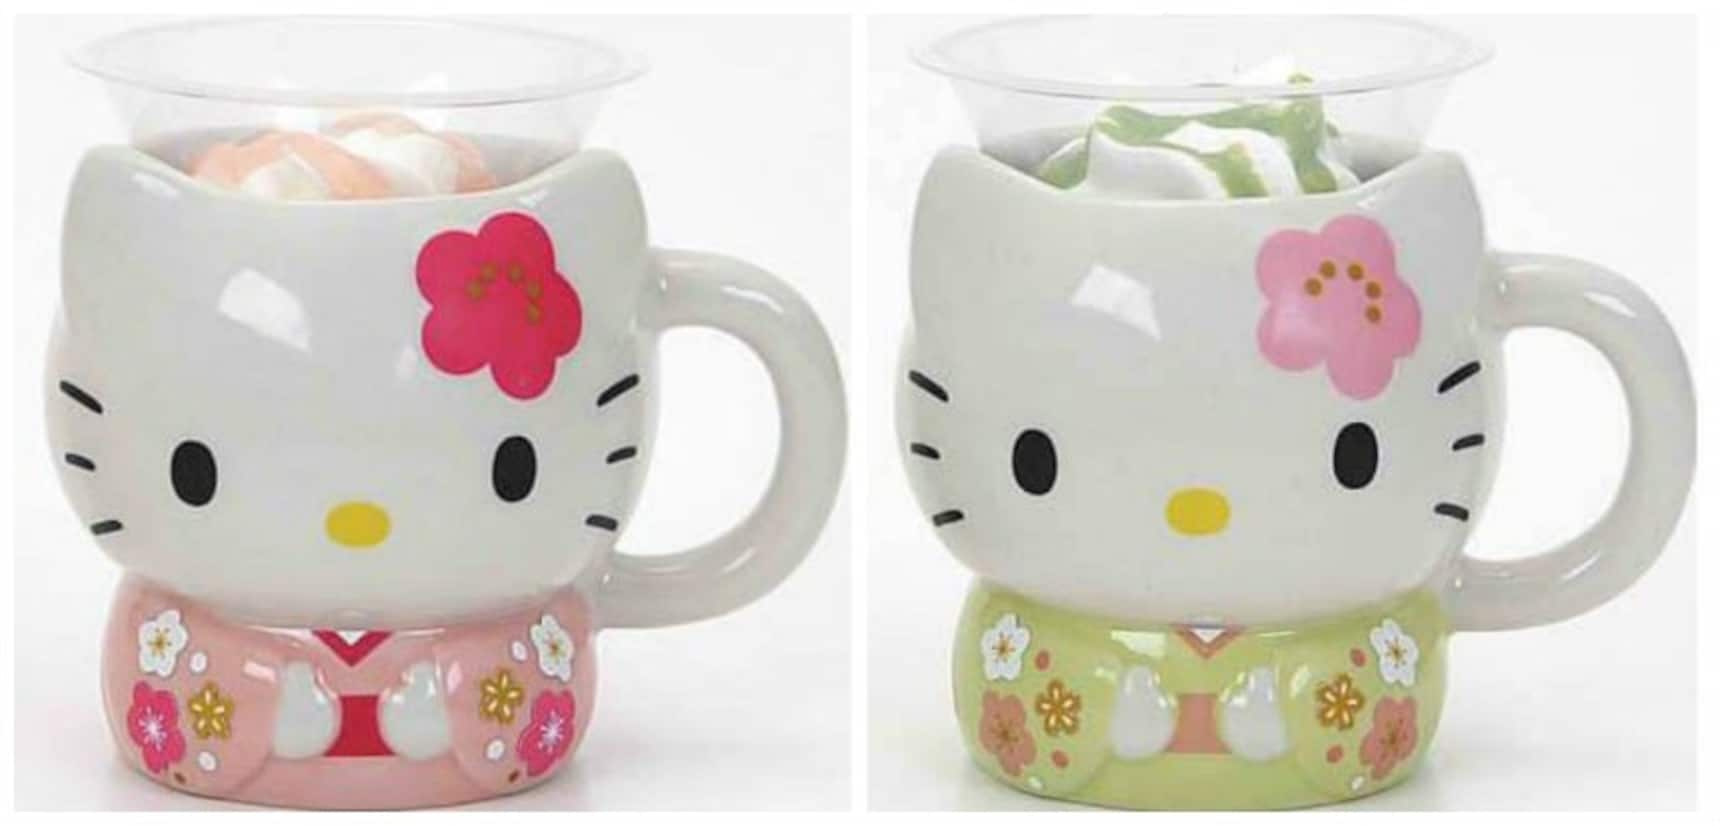 Grab a Cupful of Kitty-Chan